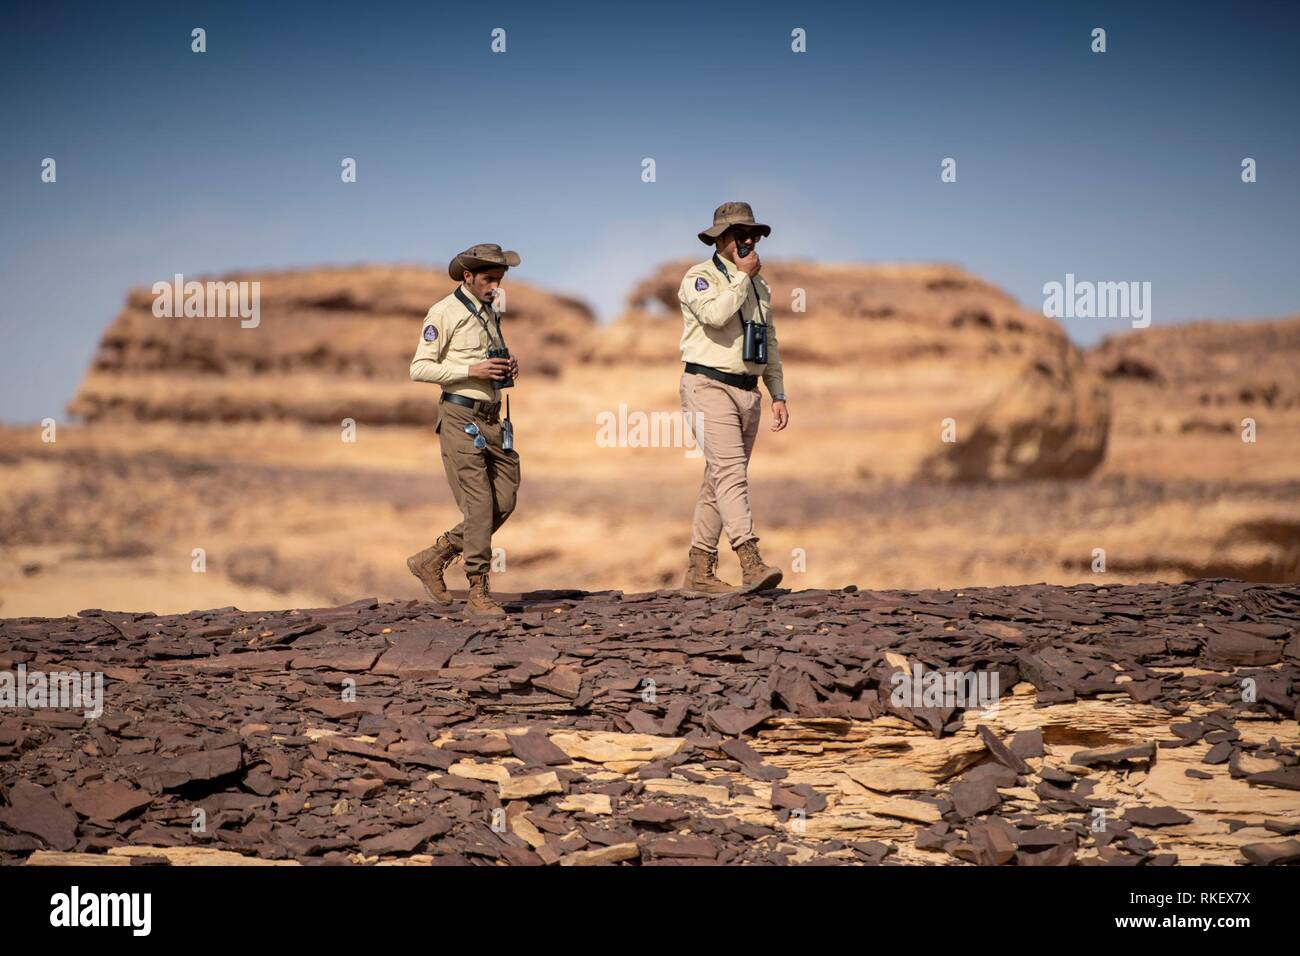 Al Ula. 11th Feb, 2019. Staff members walk in the Sharaan Nature Reserve in Al-Ula, Saudi Arabia, Feb. 10, 2019. Saudi Arabia's Crown Prince Mohammed bin Salman launched on Sunday a set of development and conservation projects in the historic site of Al-Ula, in an attempt to turn the attraction into a worldwide cultural destination. Credit: The Royal Commission for Al-Ula/Xinhua/Alamy Live News - Stock Image